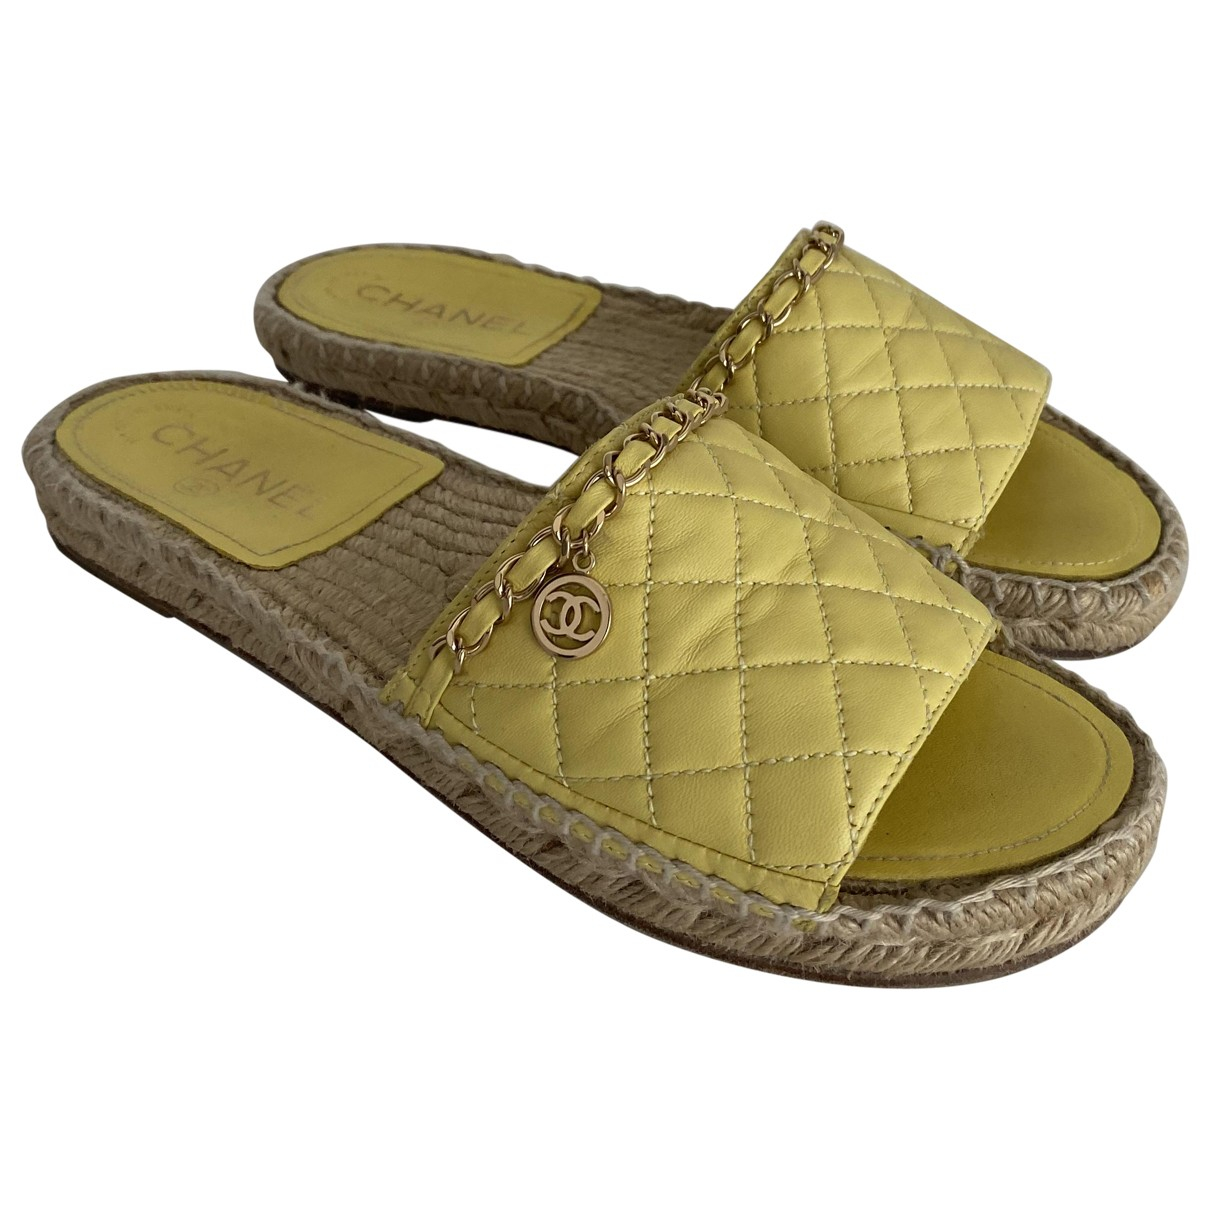 Chanel \N Yellow Leather Espadrilles for Women 38 EU